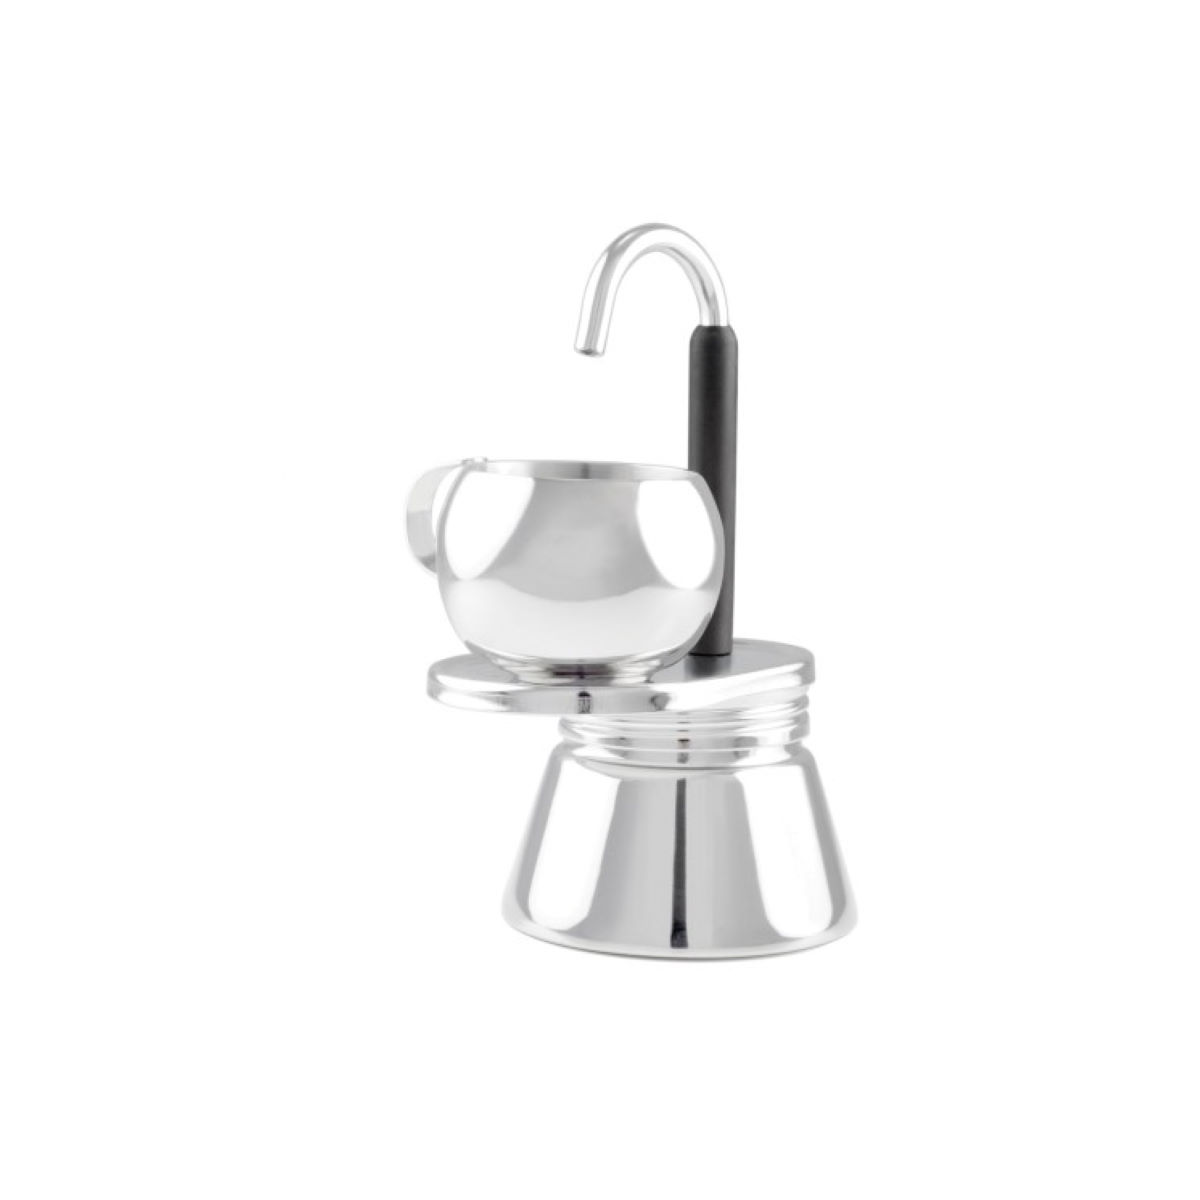 GSI Outdoors Mini-Espresso Set 1 Cup - Cafeteras